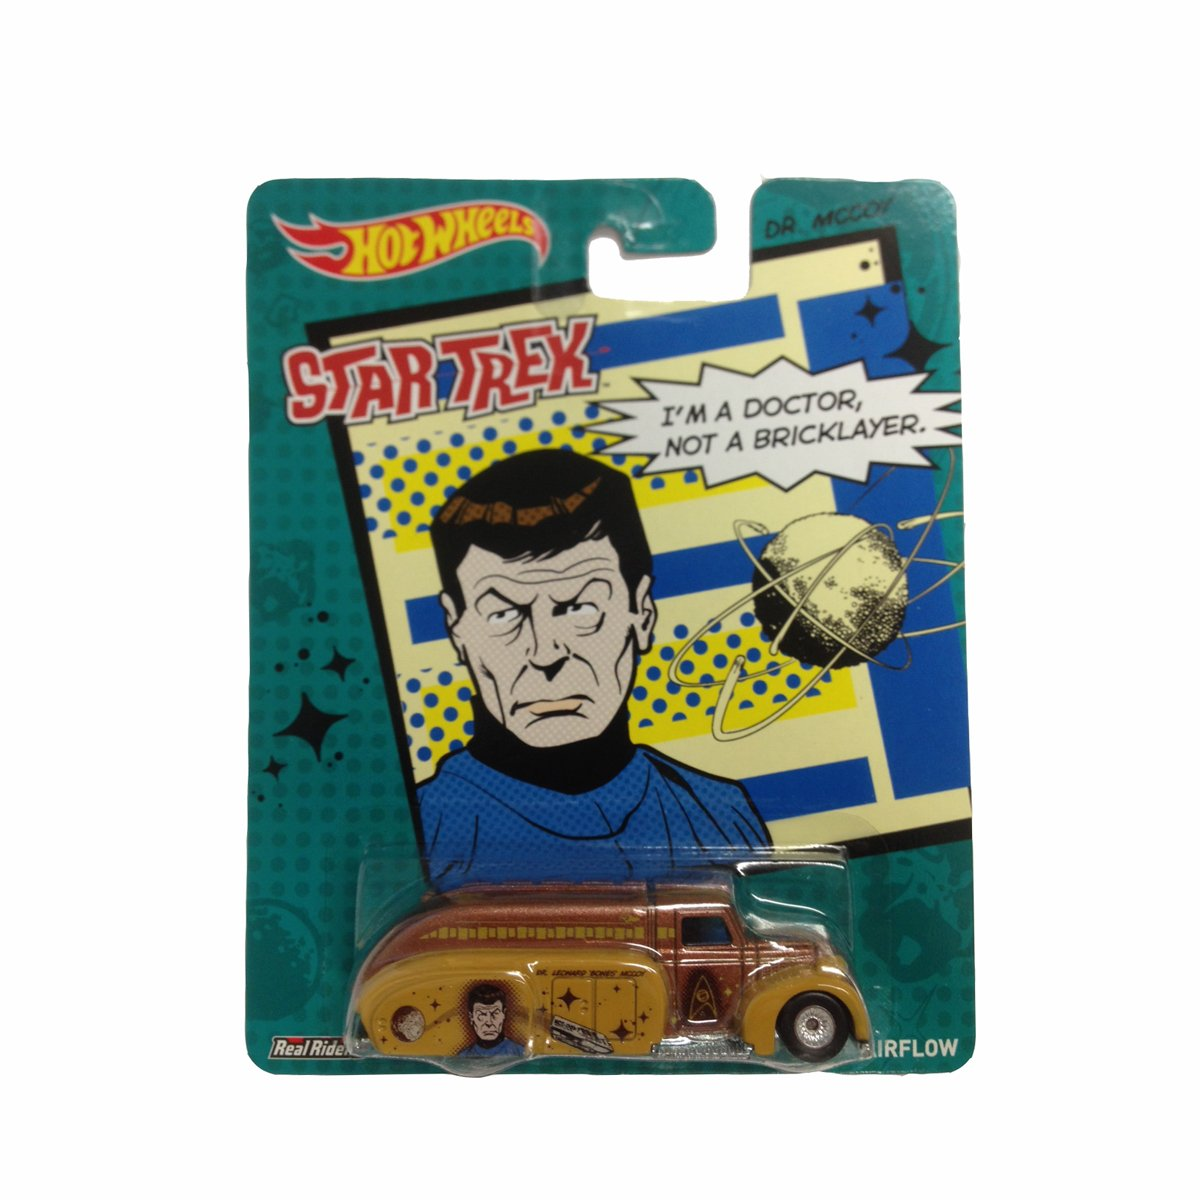 Star Trek Hot Toys Hot Wheels 2013 Star Trek Pop